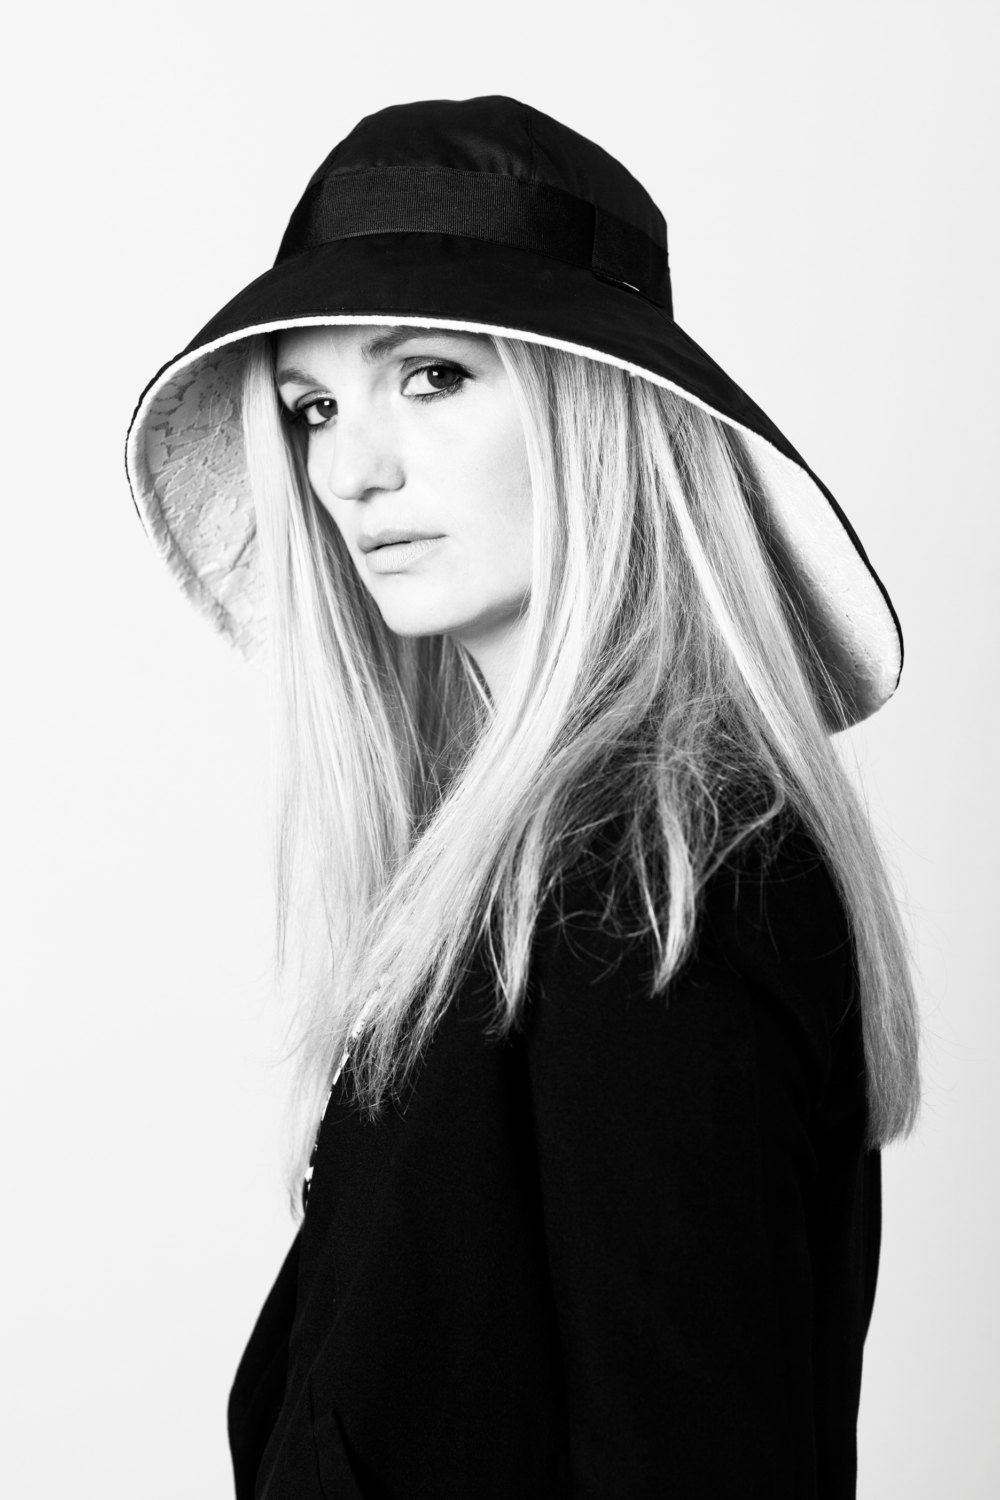 Waxed Cotton rain Hat, with black UK Waxed cotton outer, wide ribbon detail and soft white cotton lace inner. by StottandScott on Etsy https://www.etsy.com/listing/195066645/waxed-cotton-rain-hat-with-black-uk